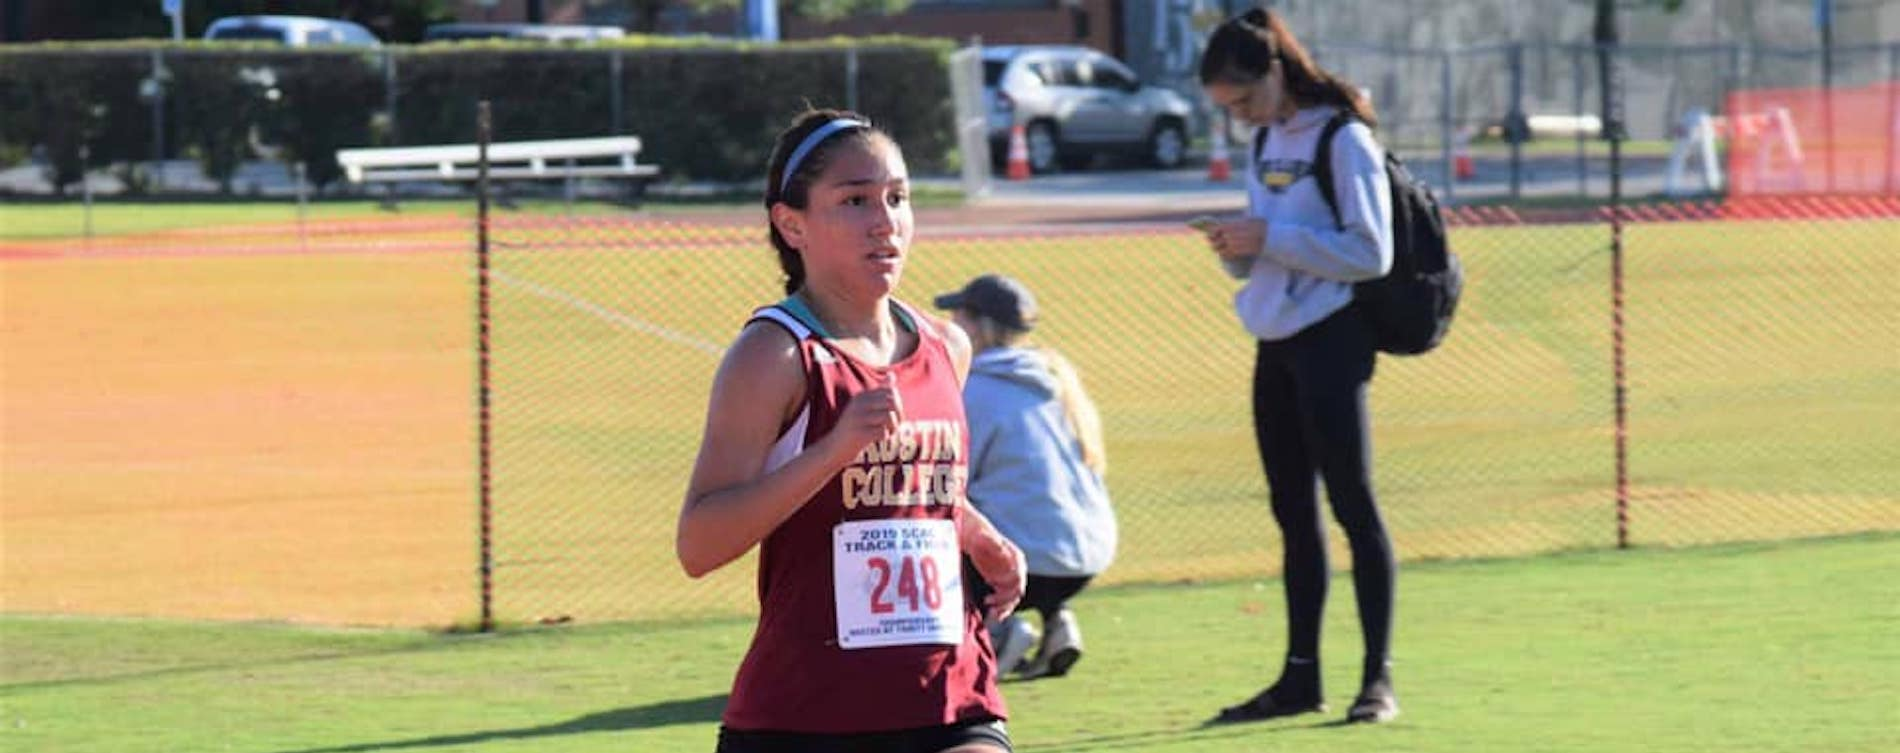 'Roos Run Well at SCAC Championships